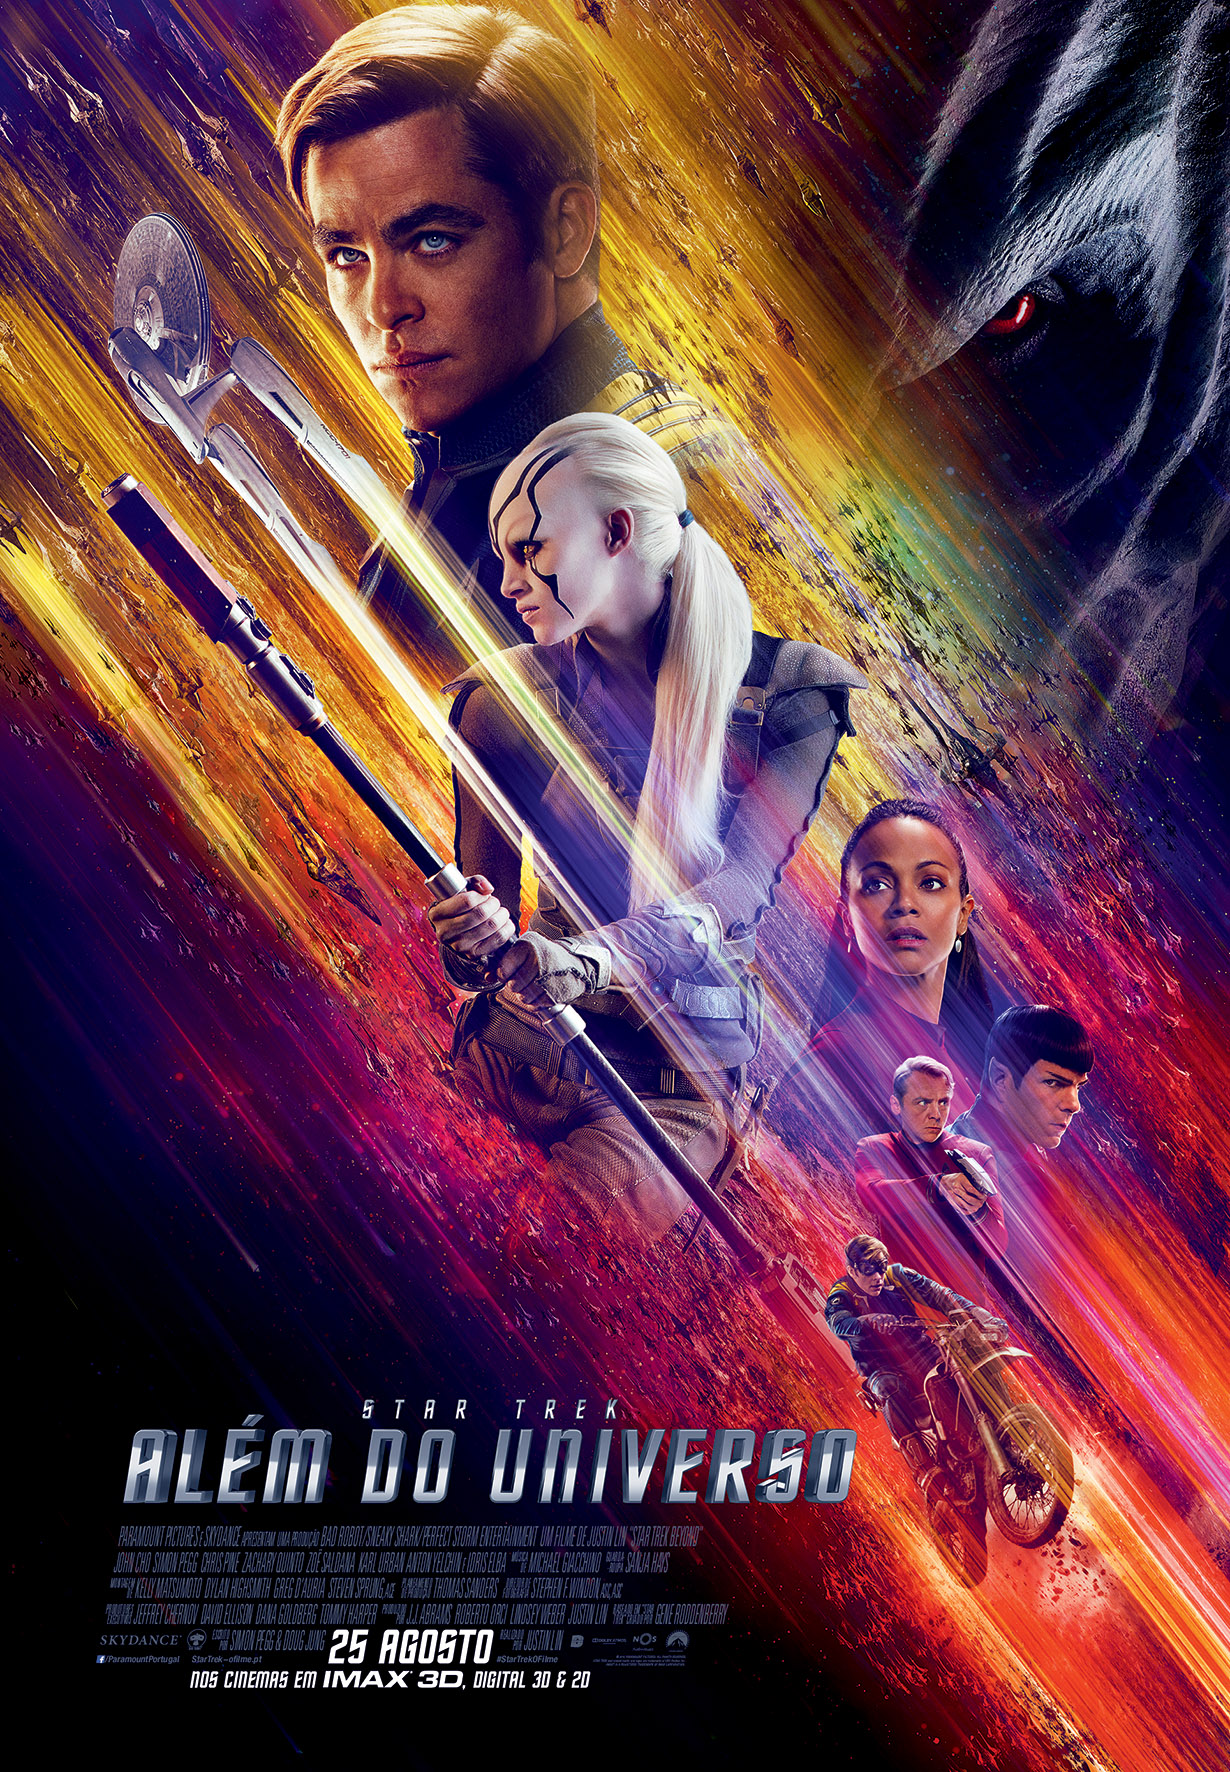 Star Trek Alem do Universo